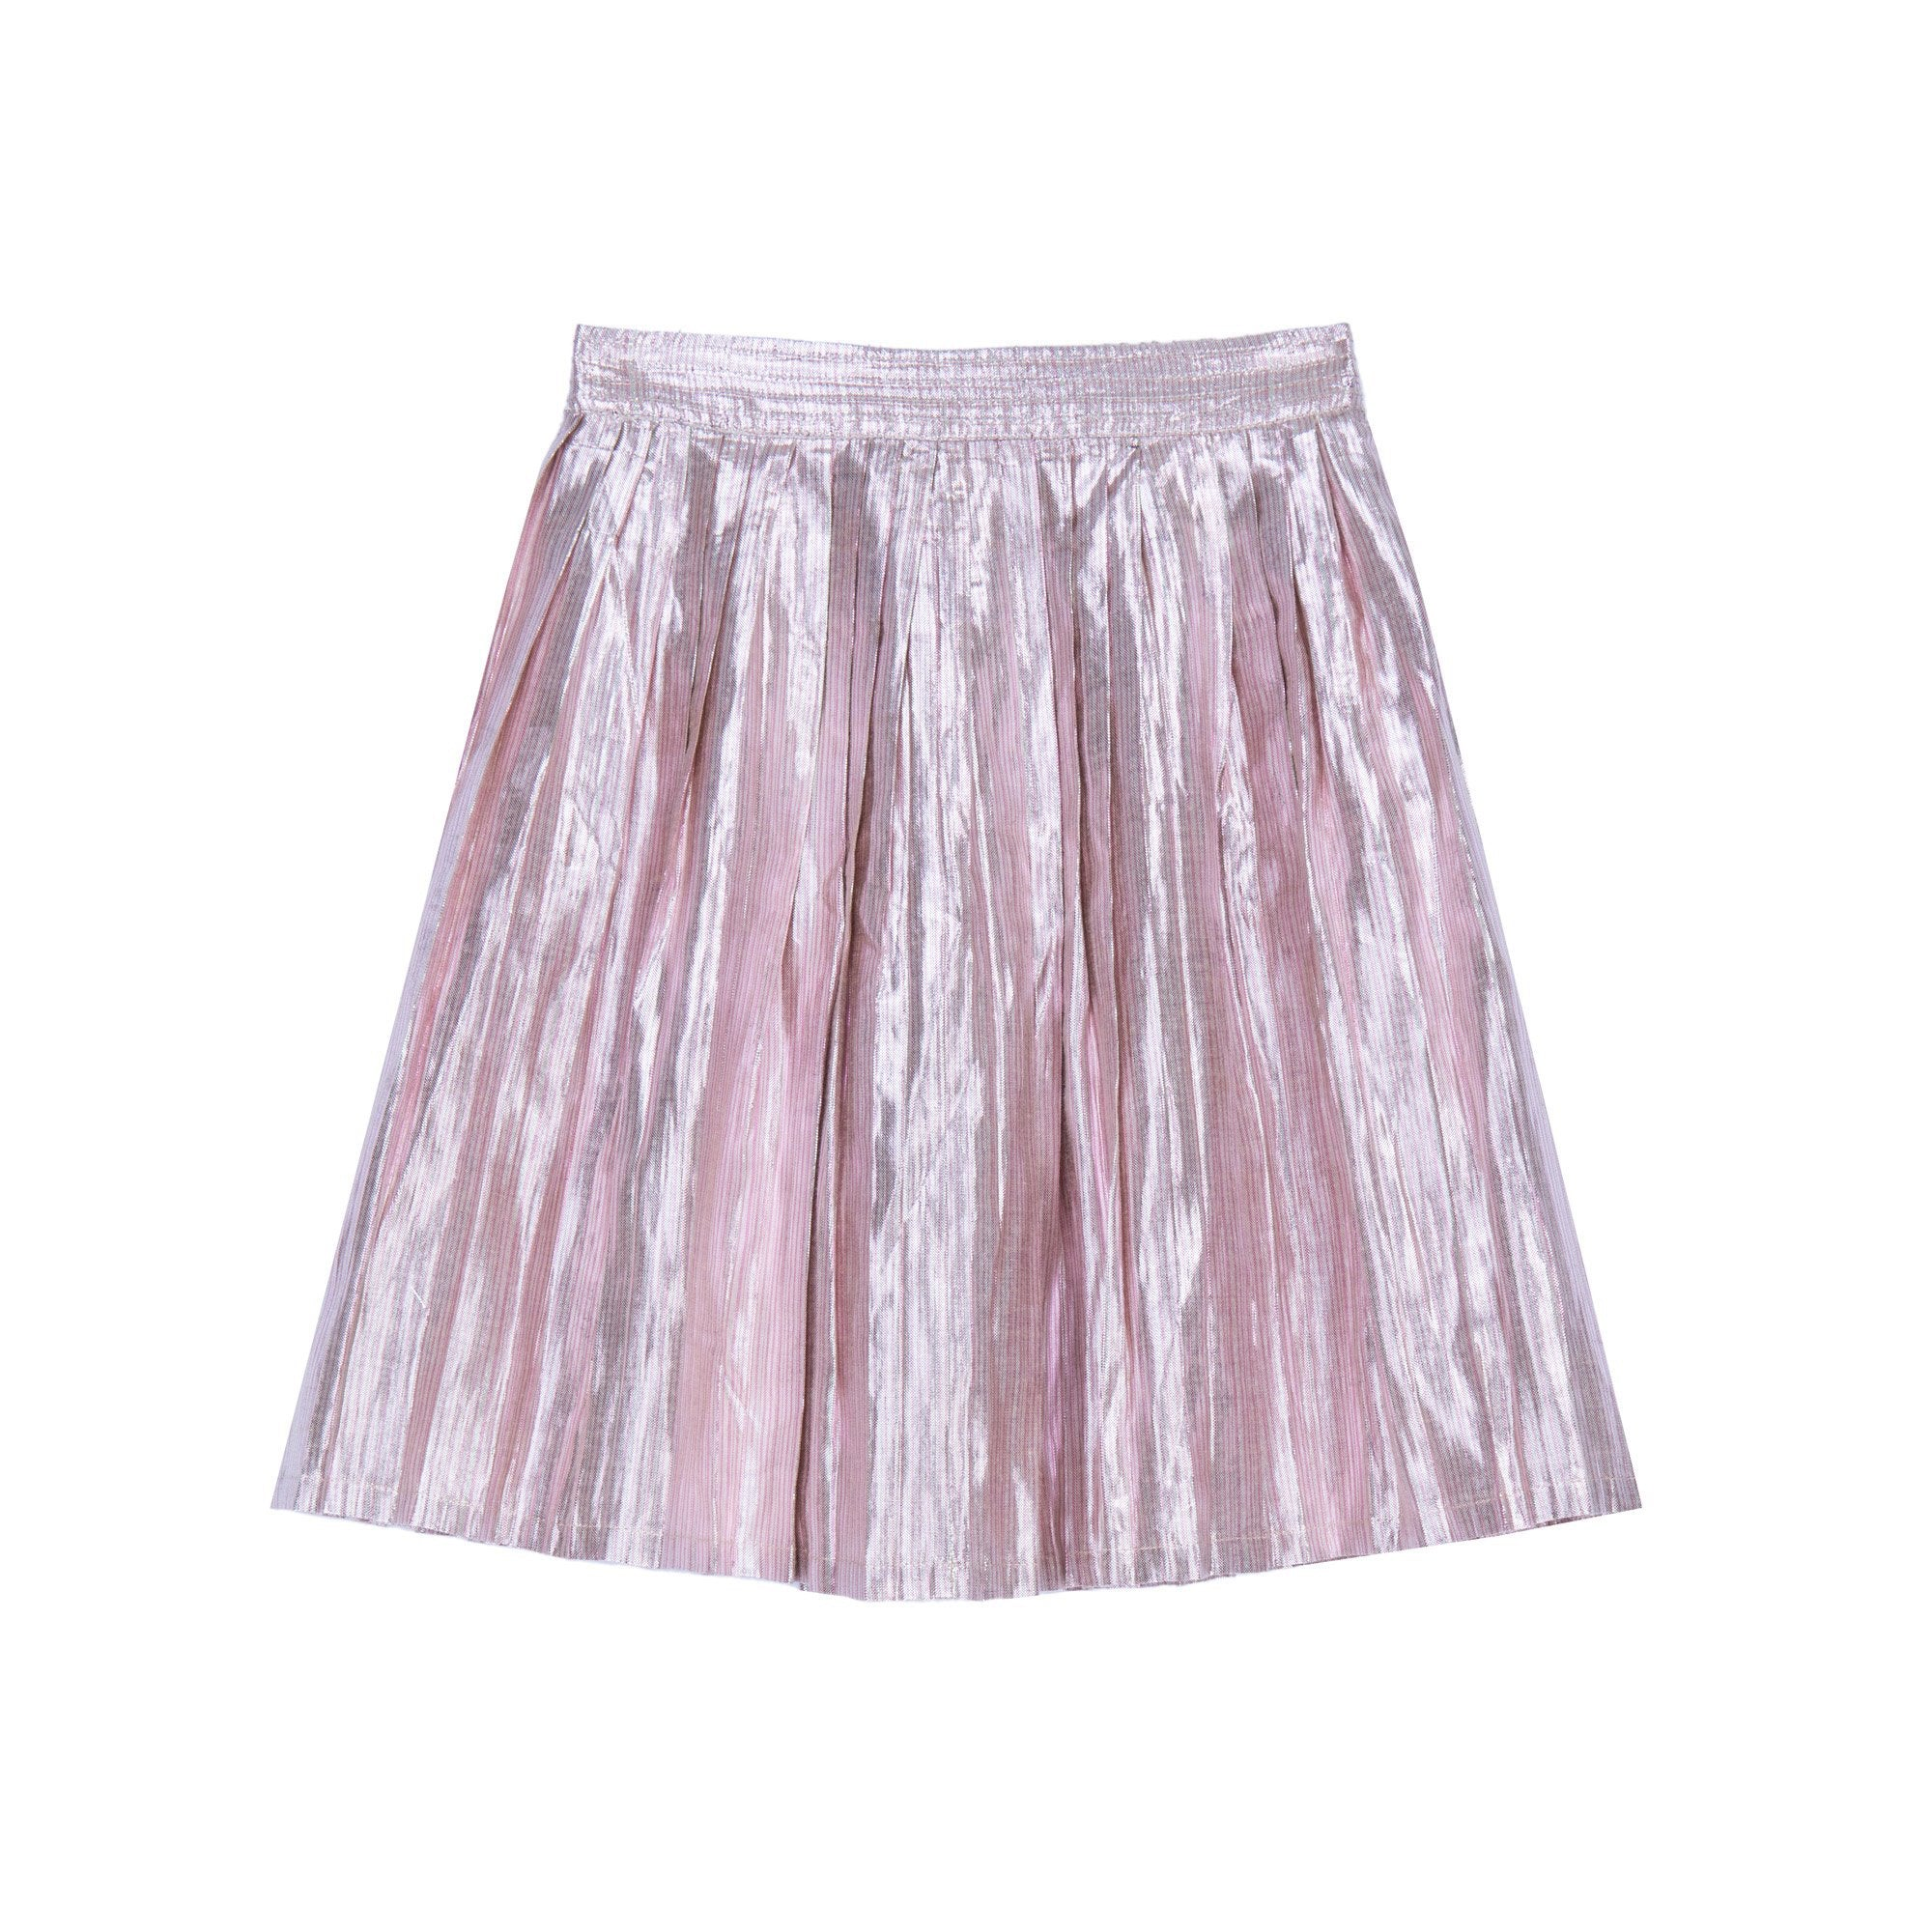 Paola Pleated Knee Length Skirt - Gold Pink Stripe Lame